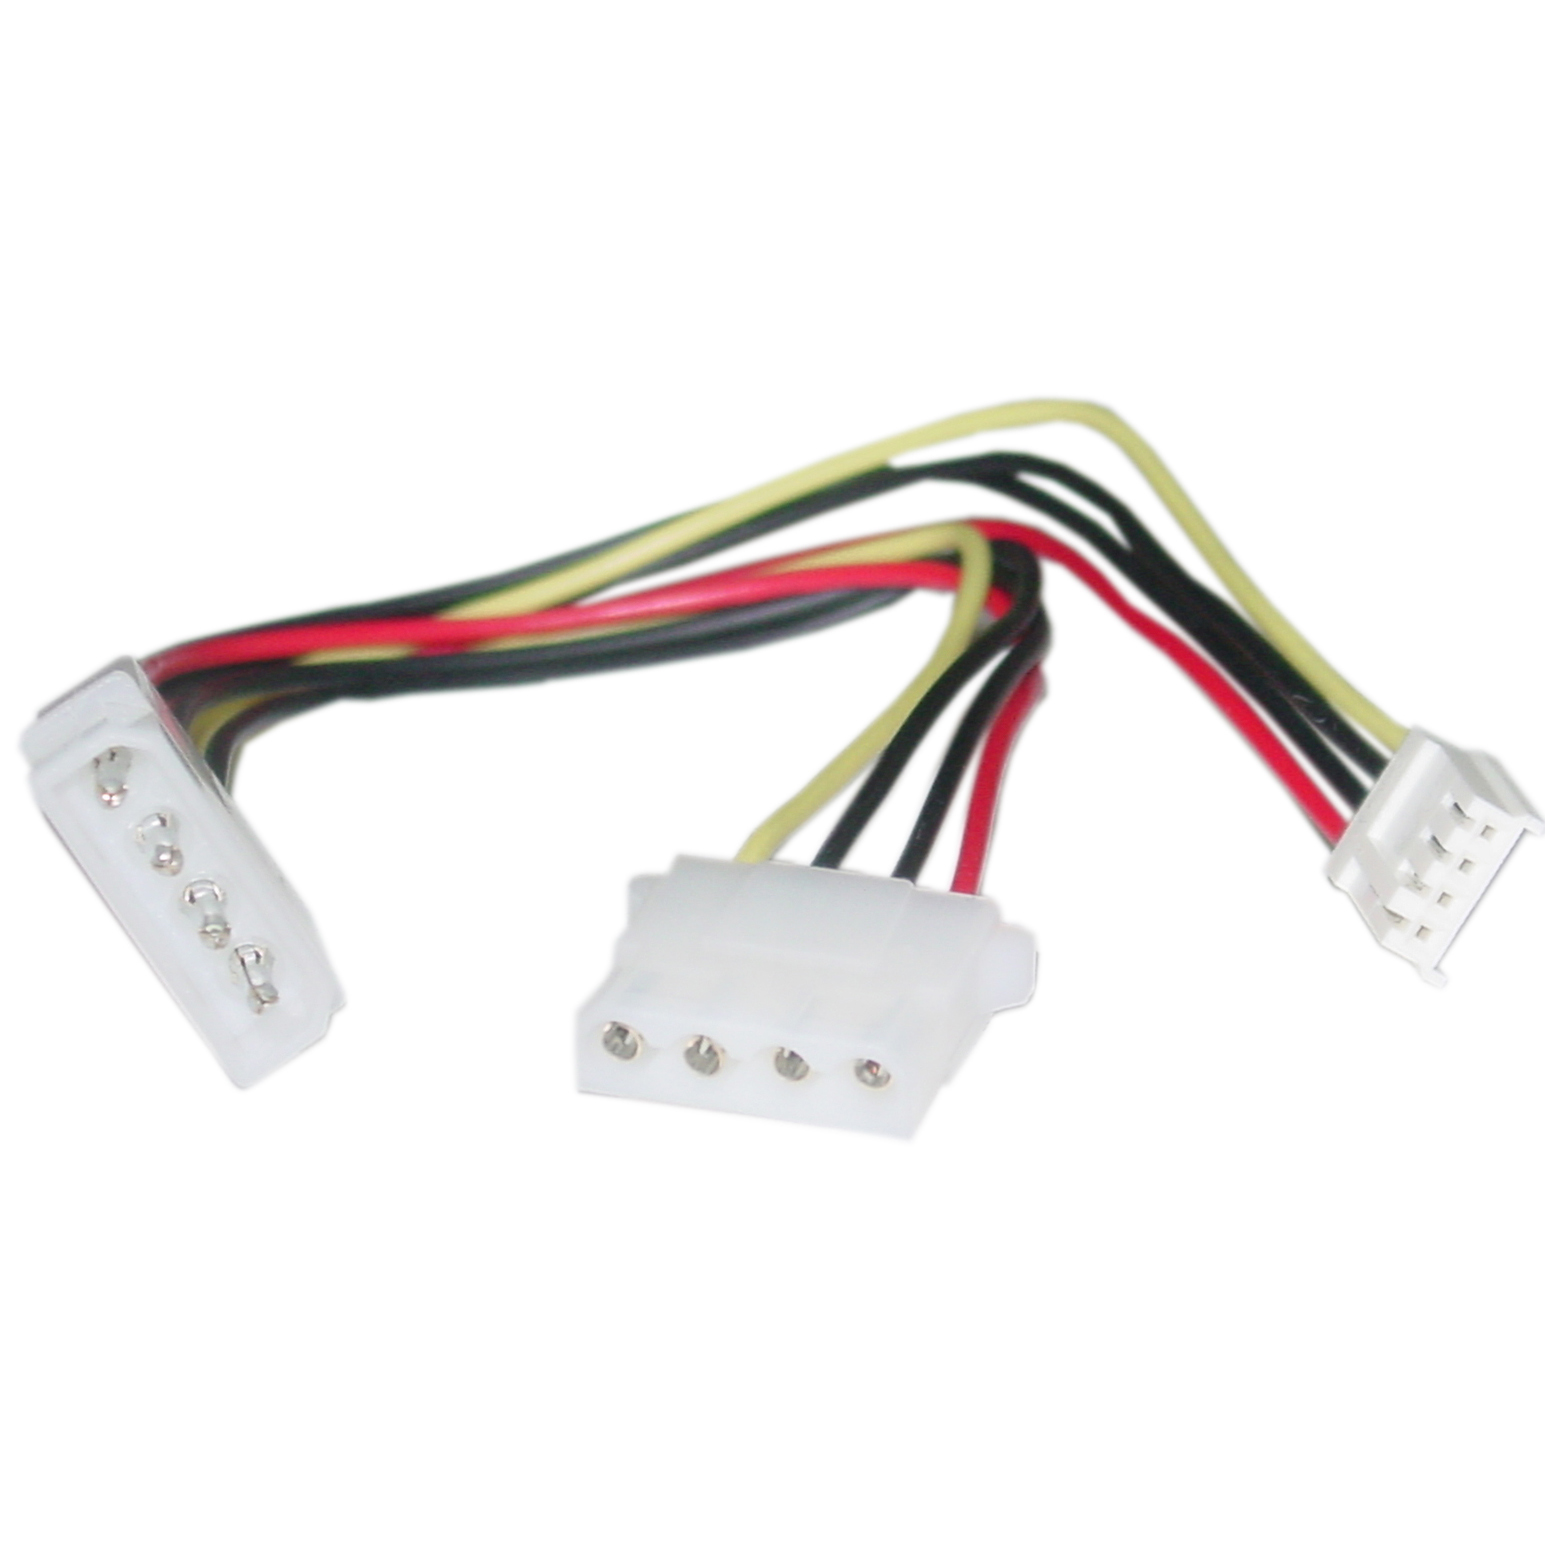 Molex 8 Pin Connector Forex Trading Wiring Harness